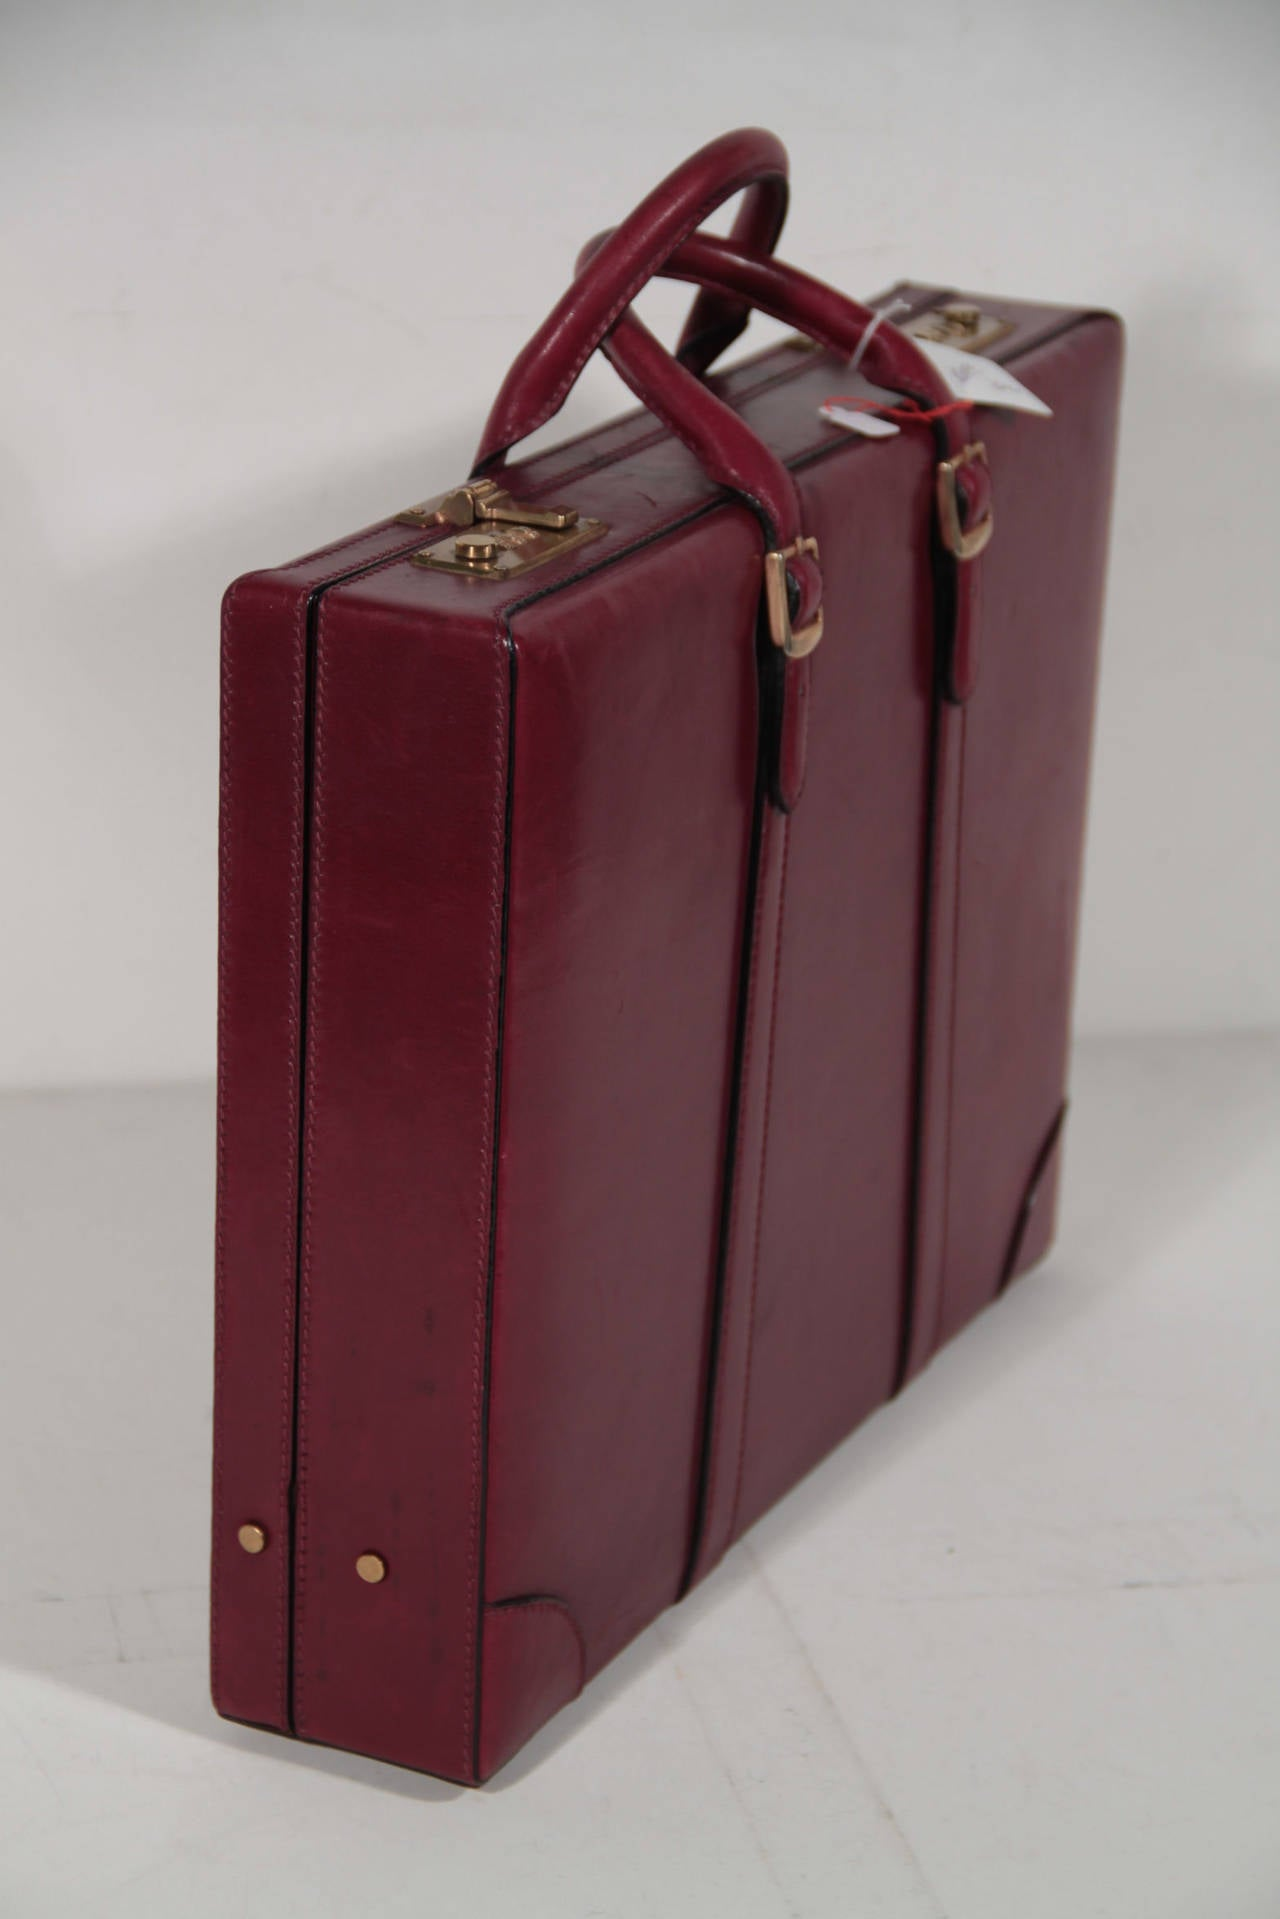 Beige GUCCI Italian VINTAGE Burgundy Leather HARD SIDE BRIEFCASE Work Bag HANDBAG For Sale